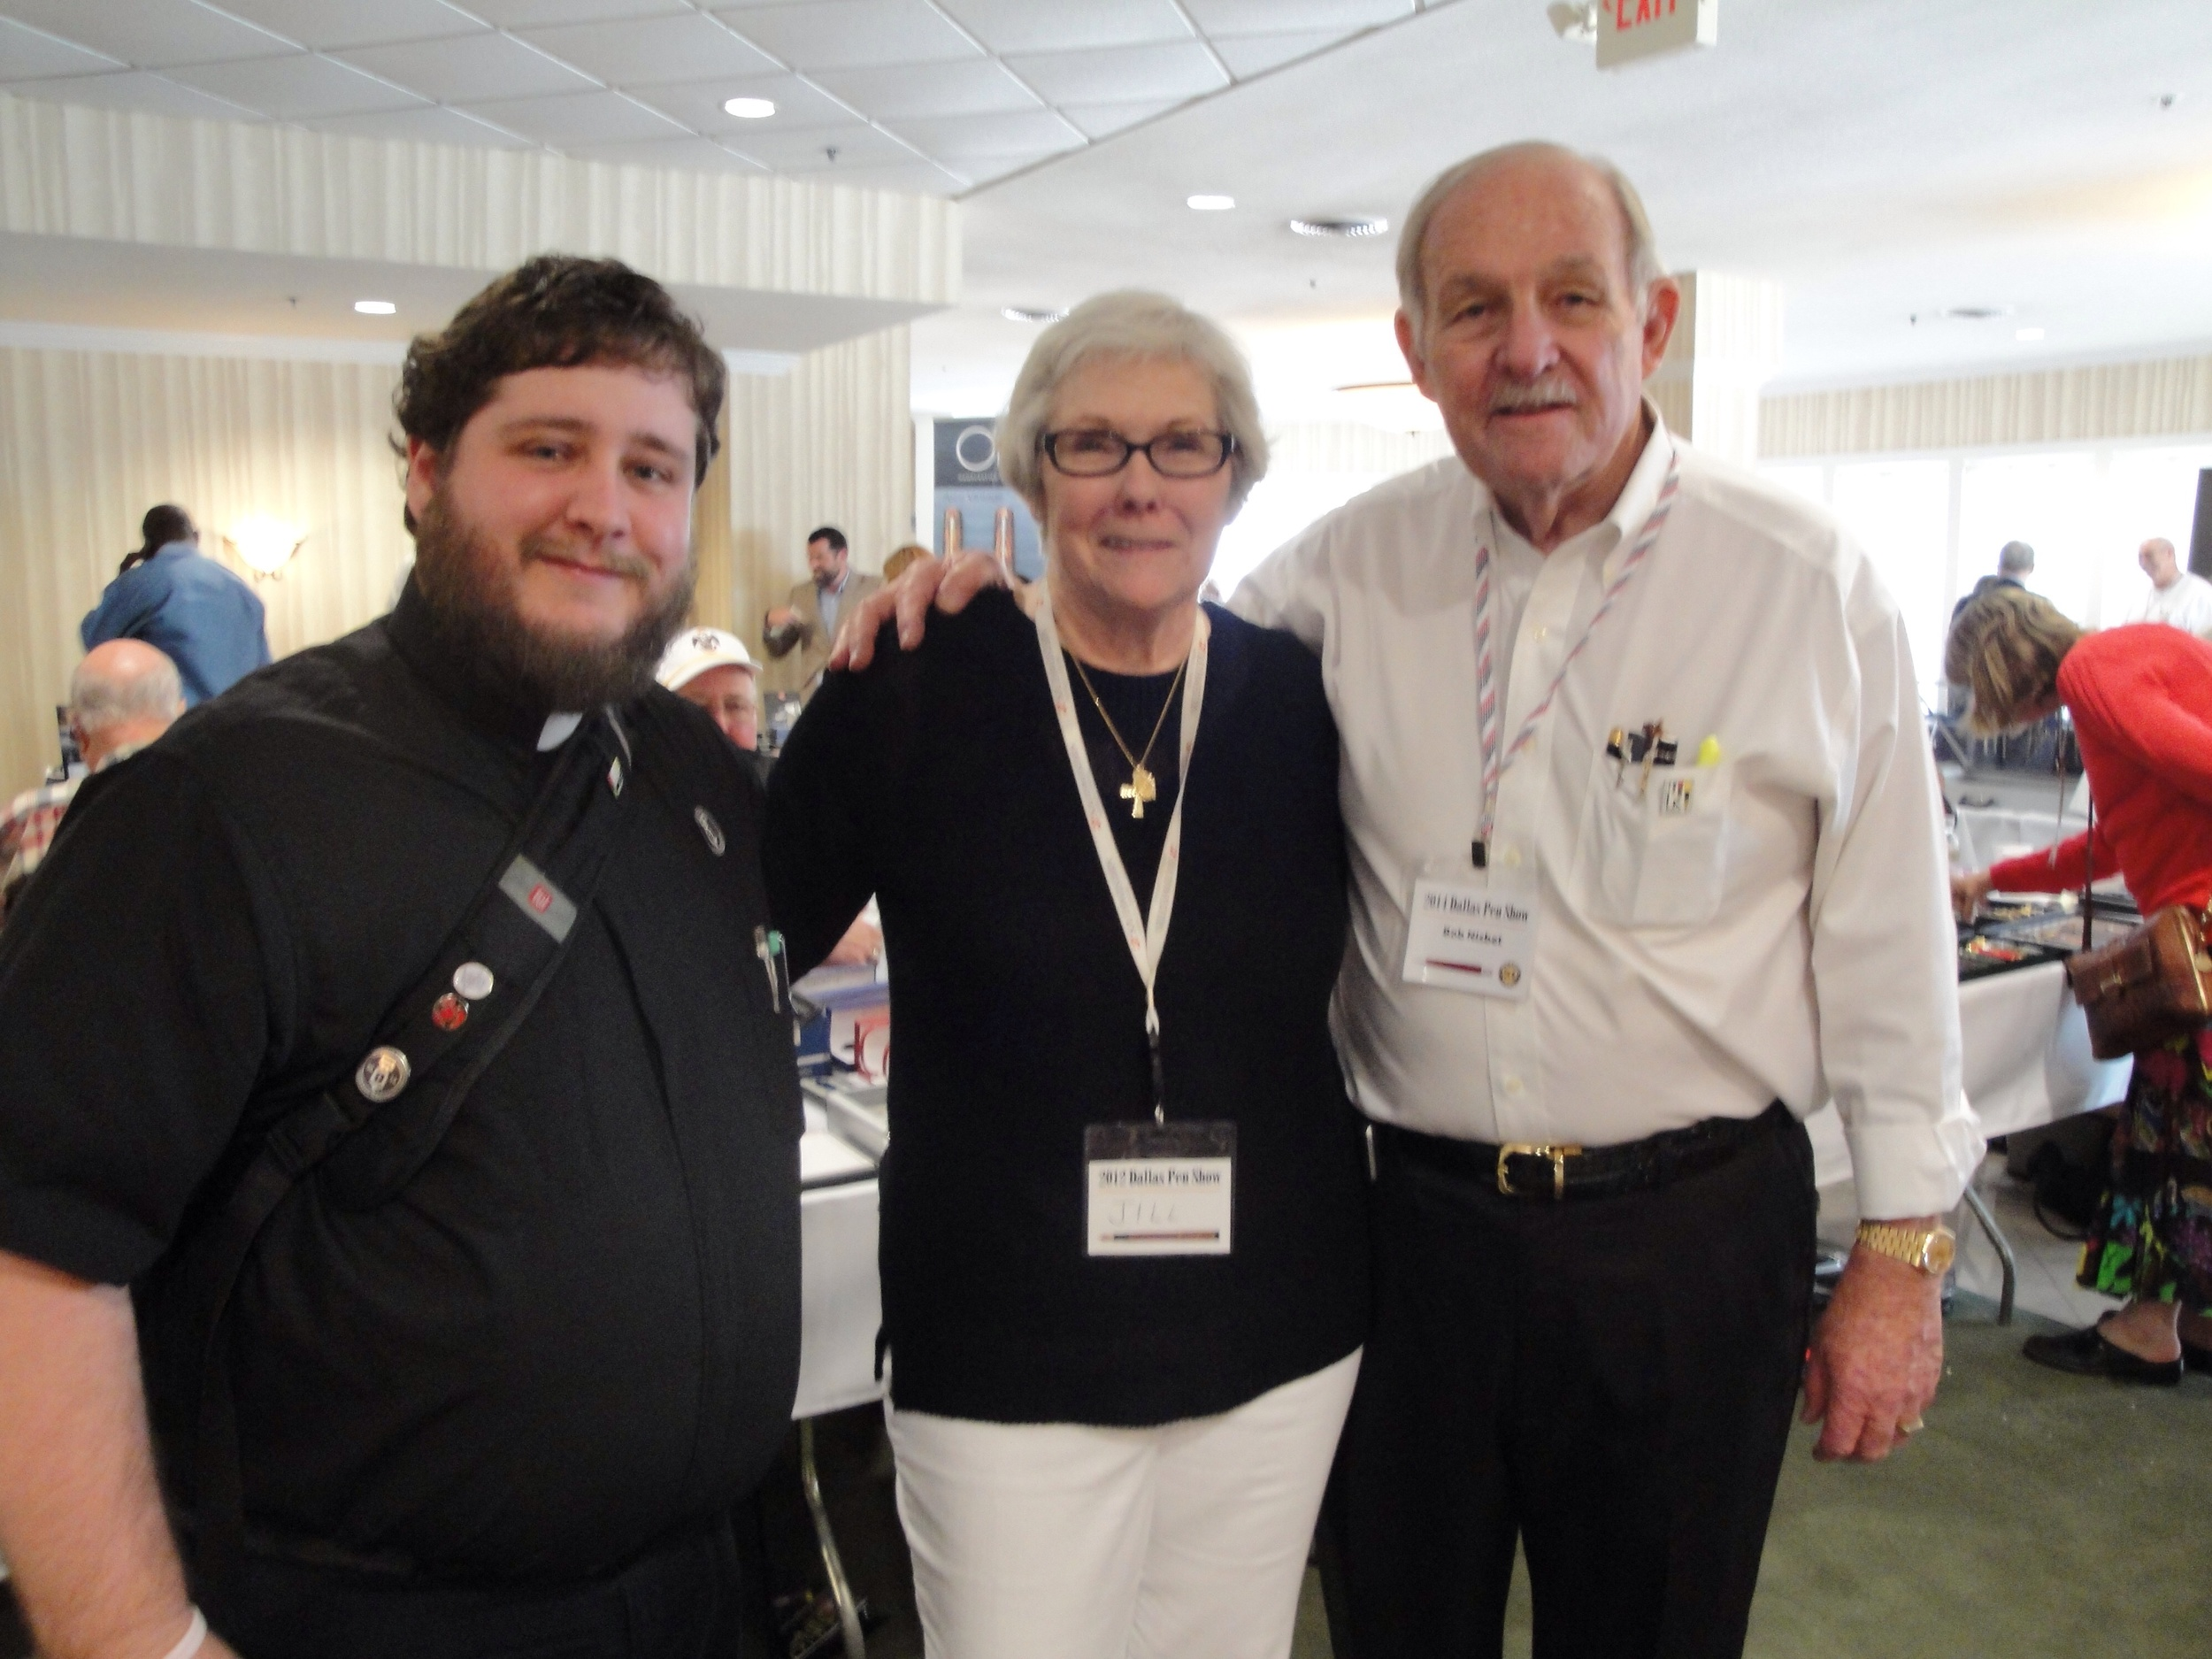 Myself with Dr. Bob and Jill Nisbet